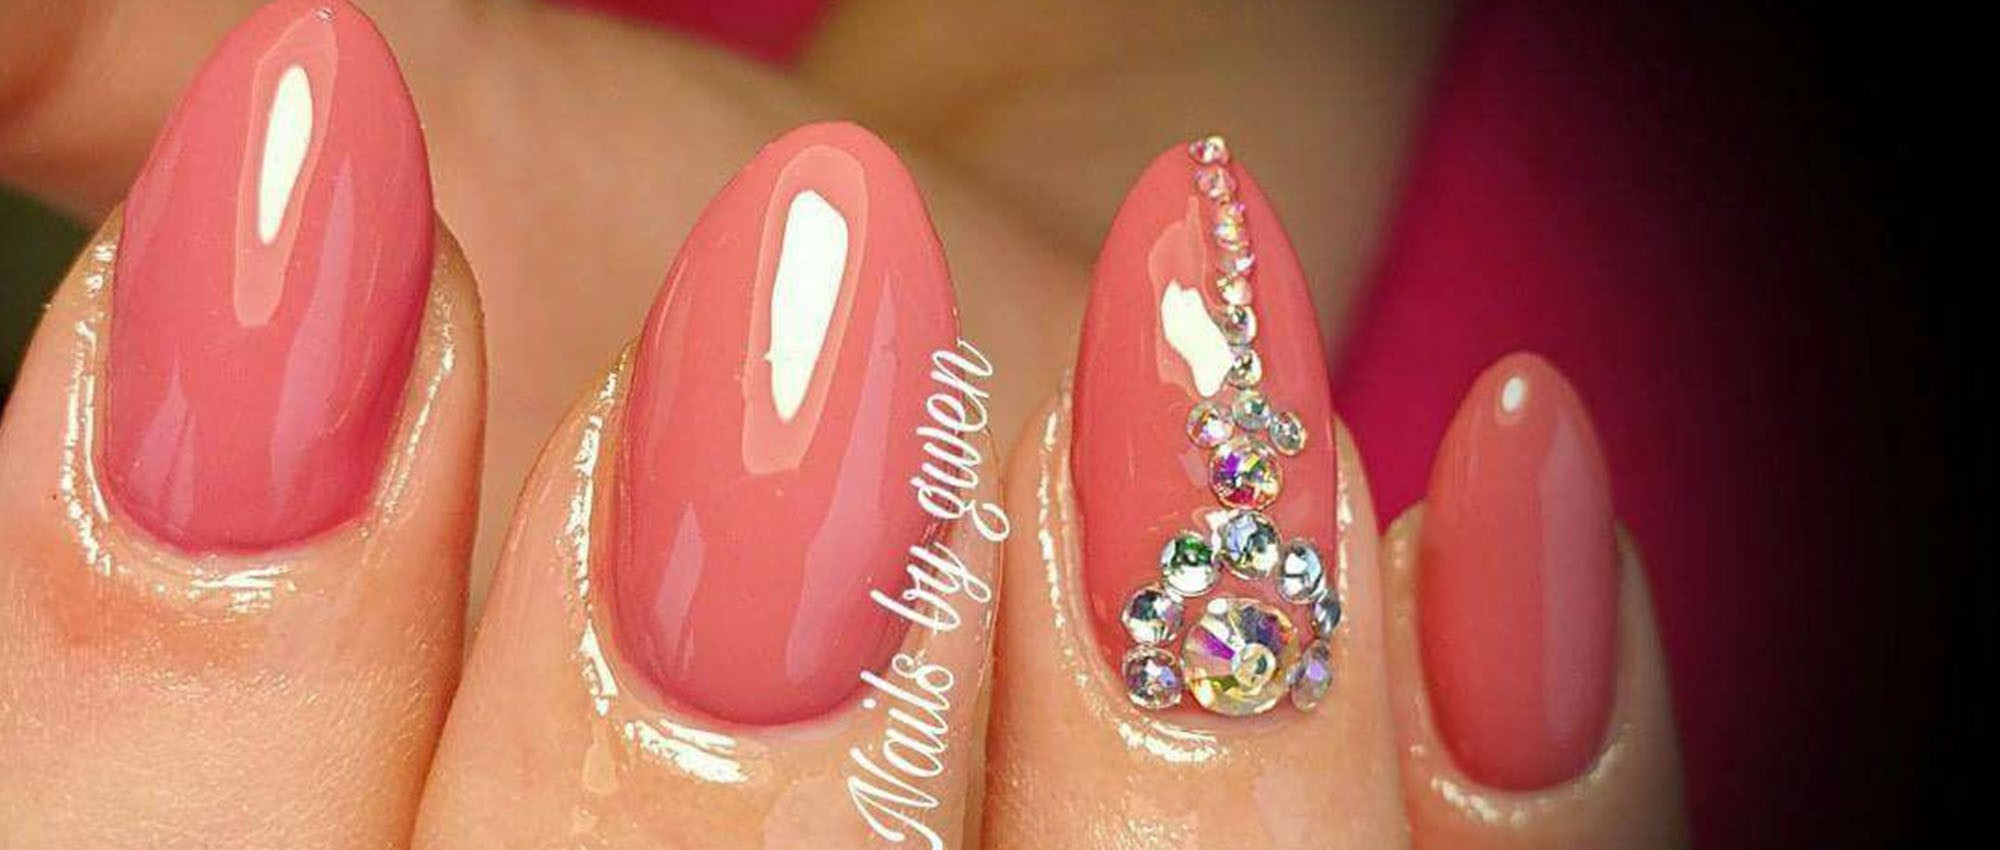 Header Nails By Gwen - Nagelstudio Menen